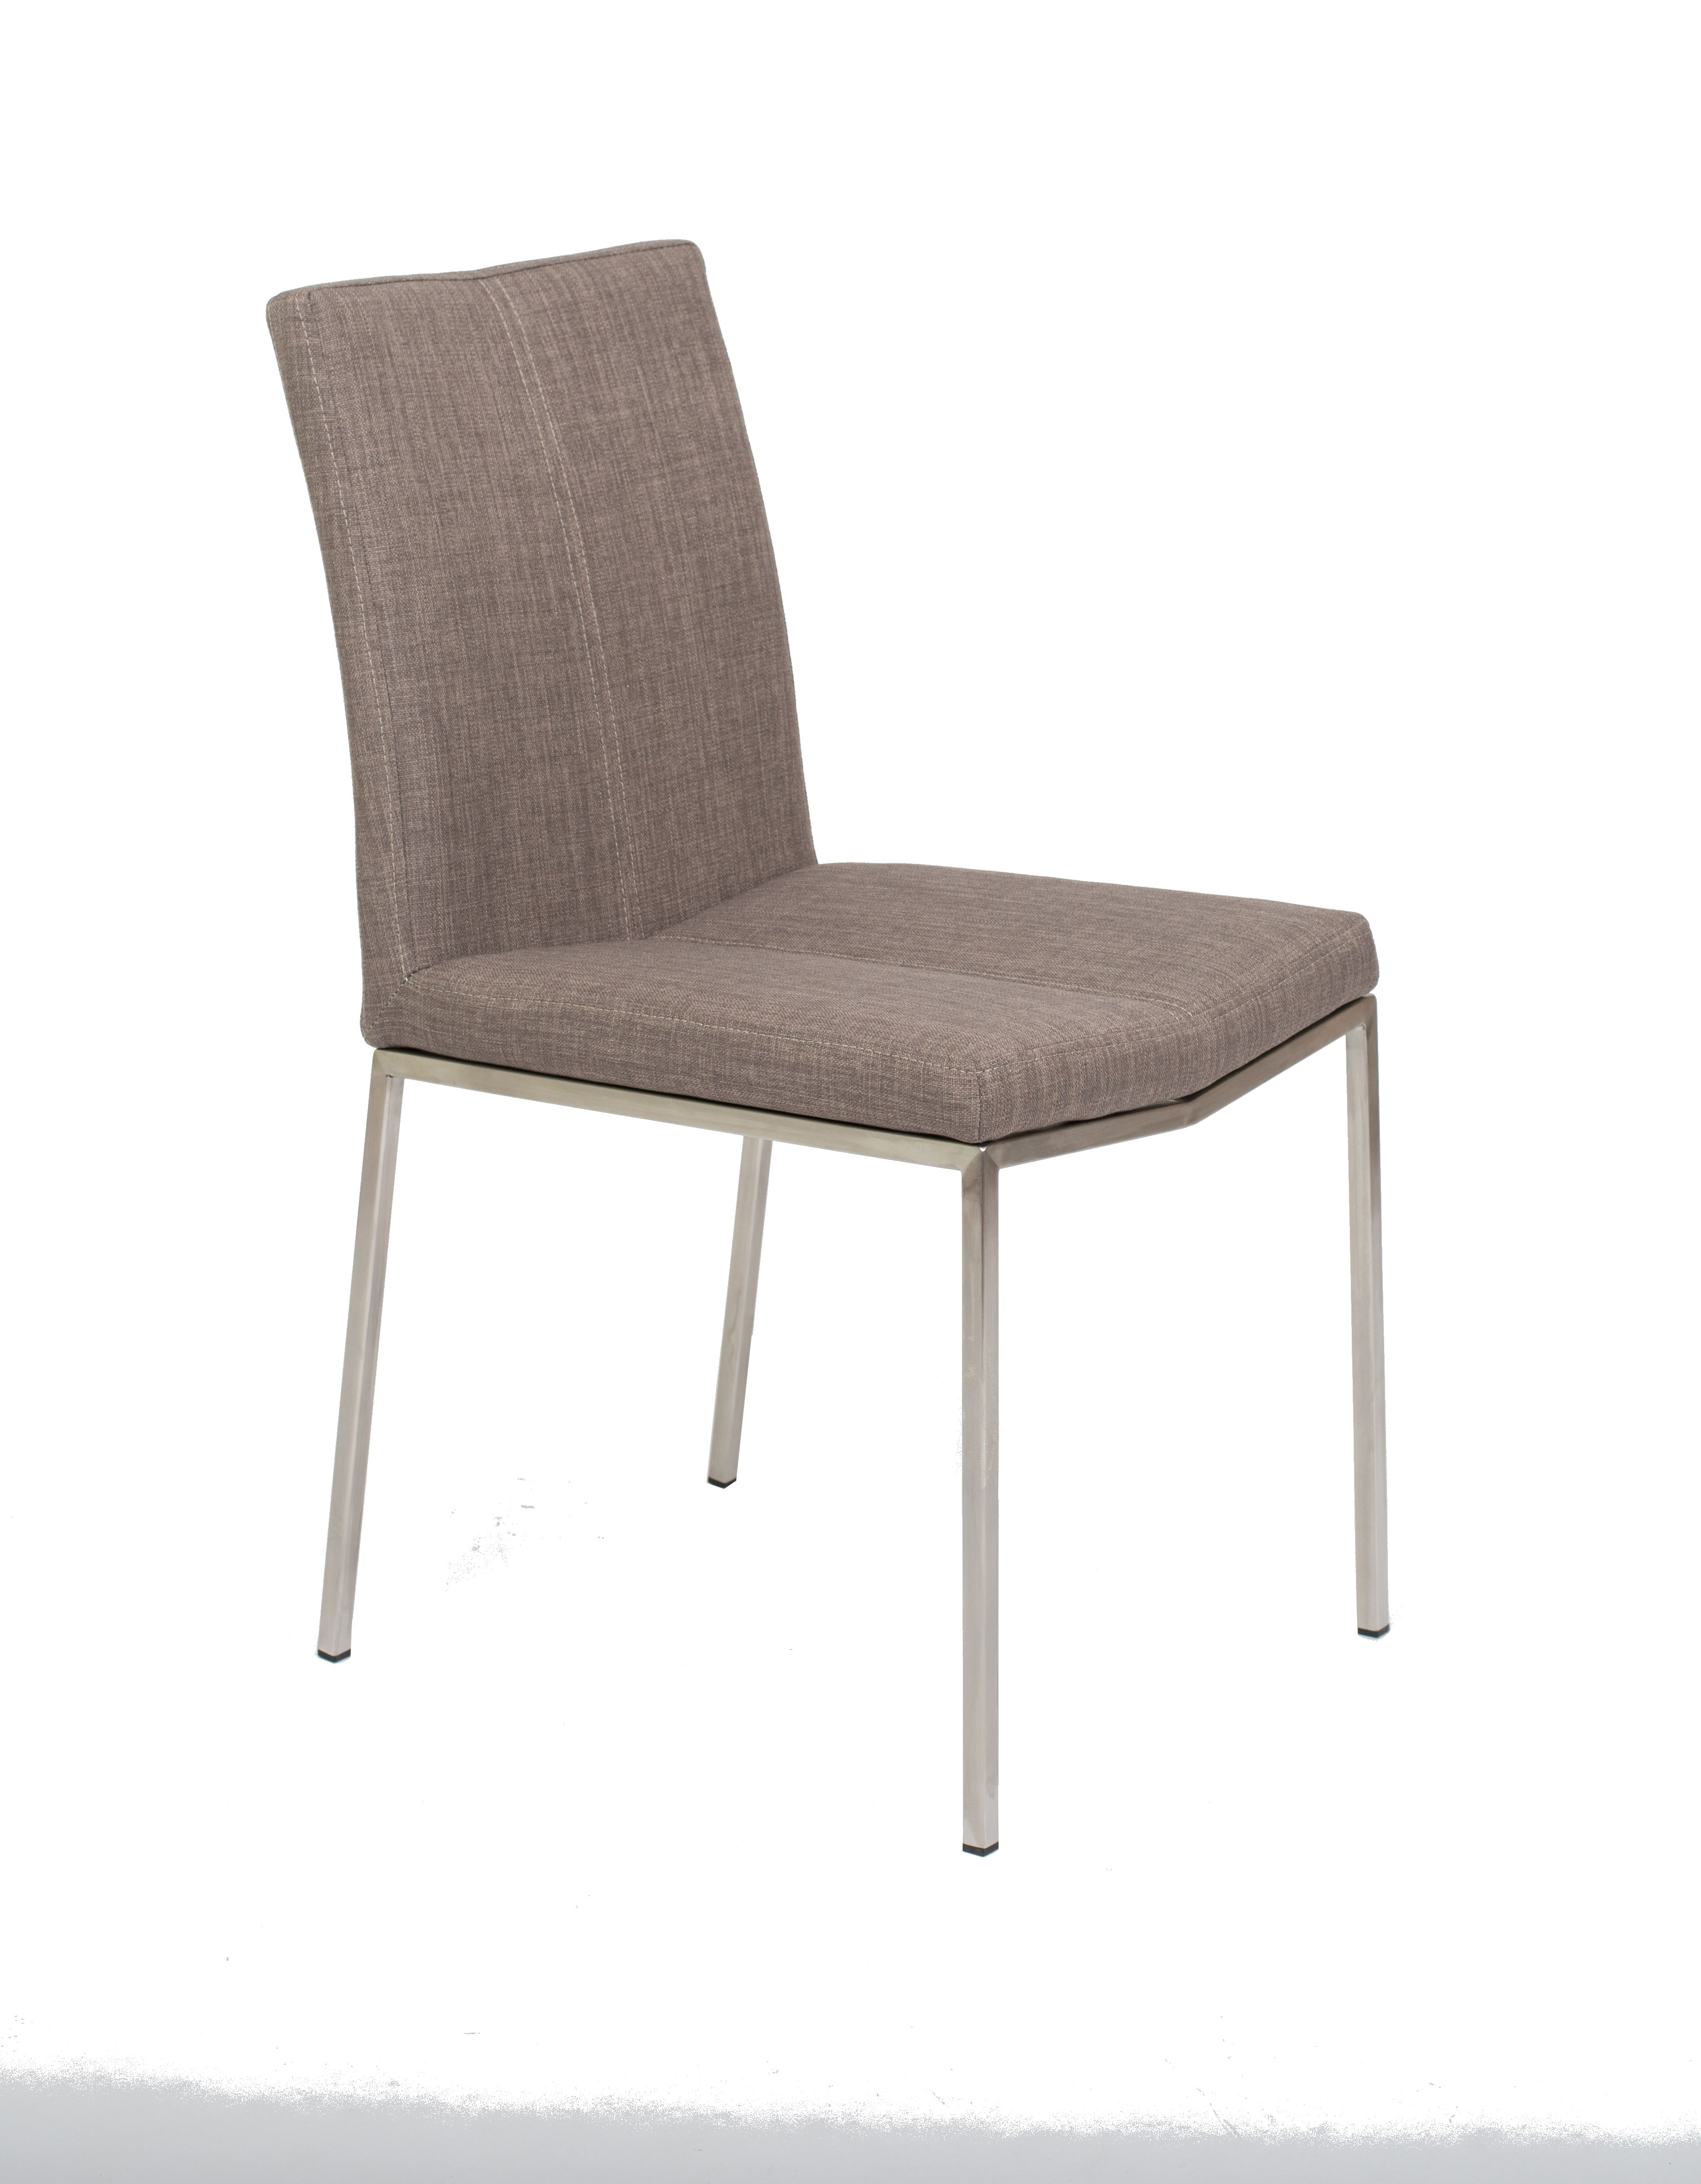 Stühle Kaufen Light Grey Dining Chairs Stühle Gray Dining Chairs Chair Und